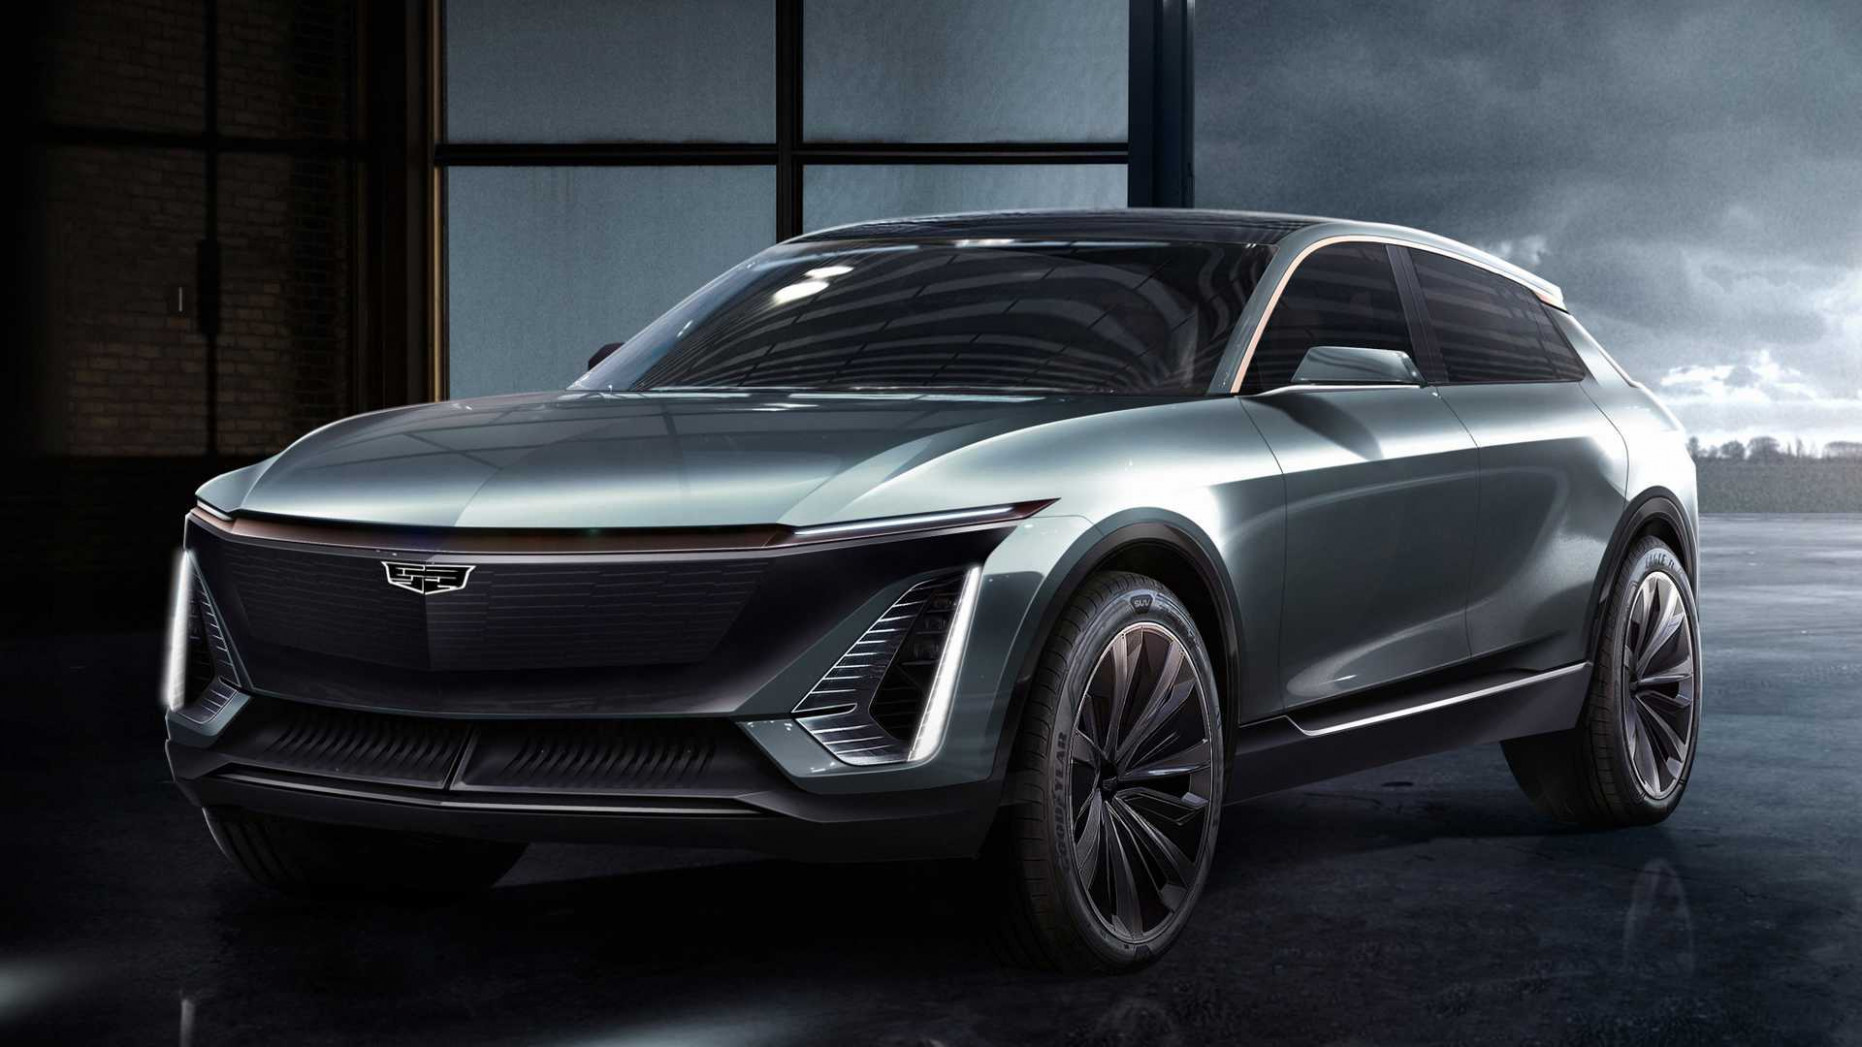 Spesification What Cars Will Cadillac Make In 2022